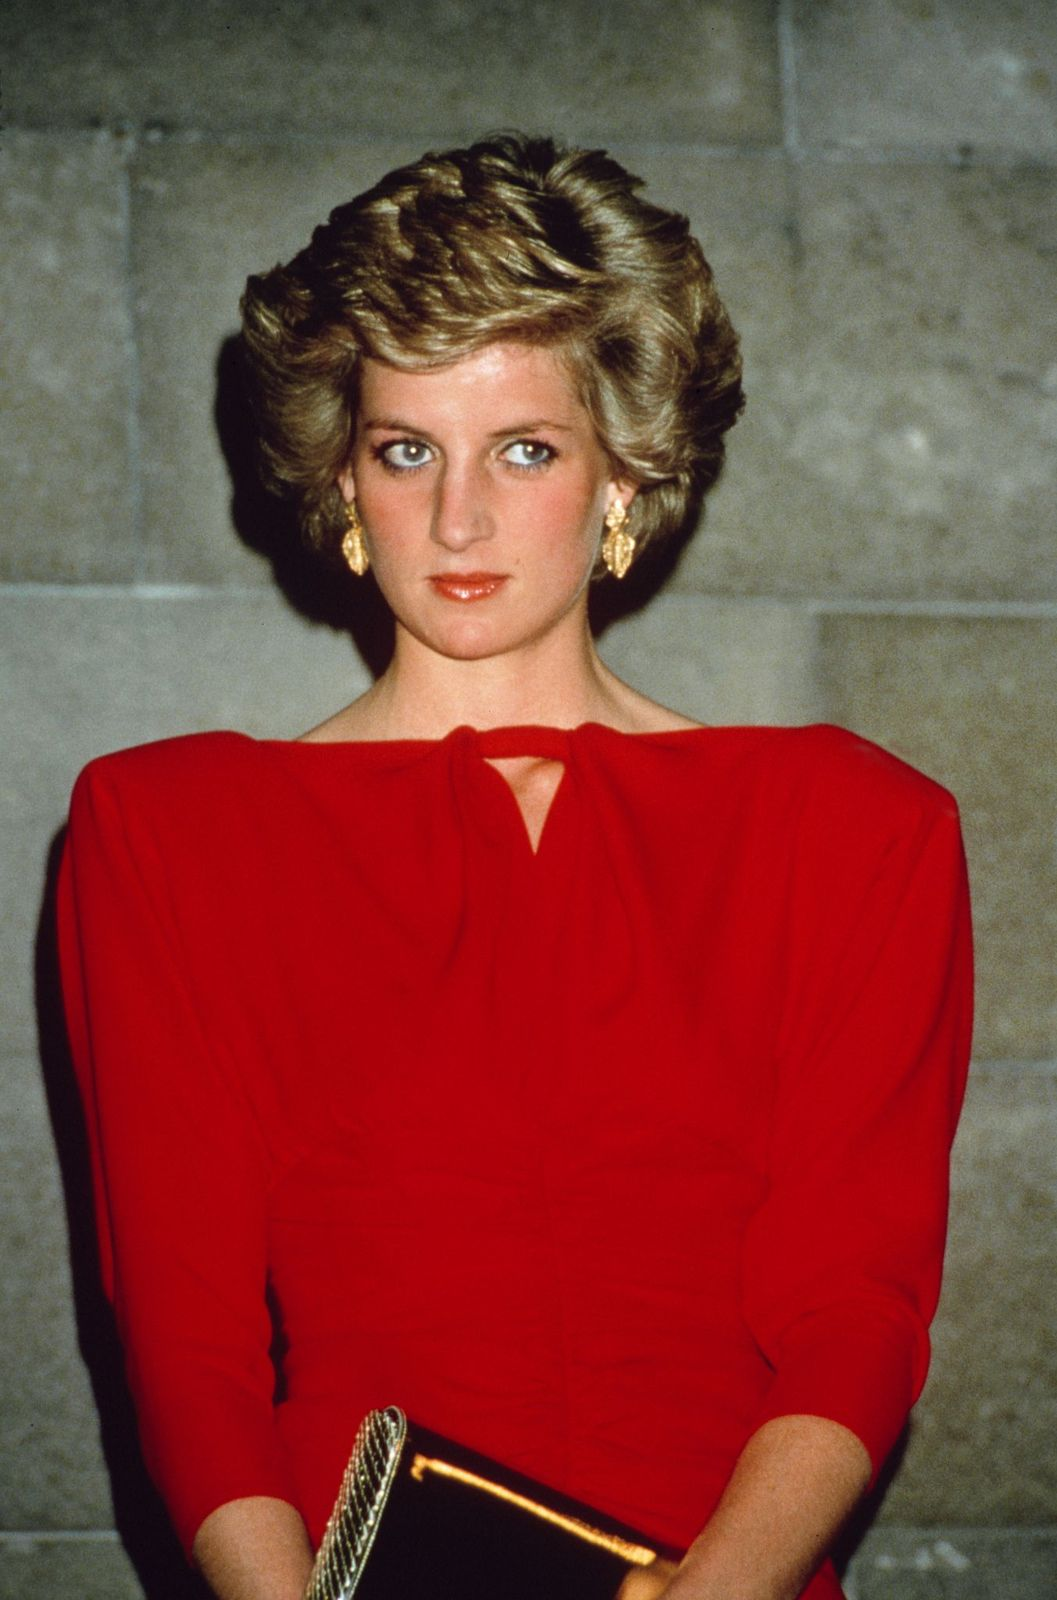 Princess Diana at a state reception in Melbourne, October 01, 1988   Photo: Getty Images